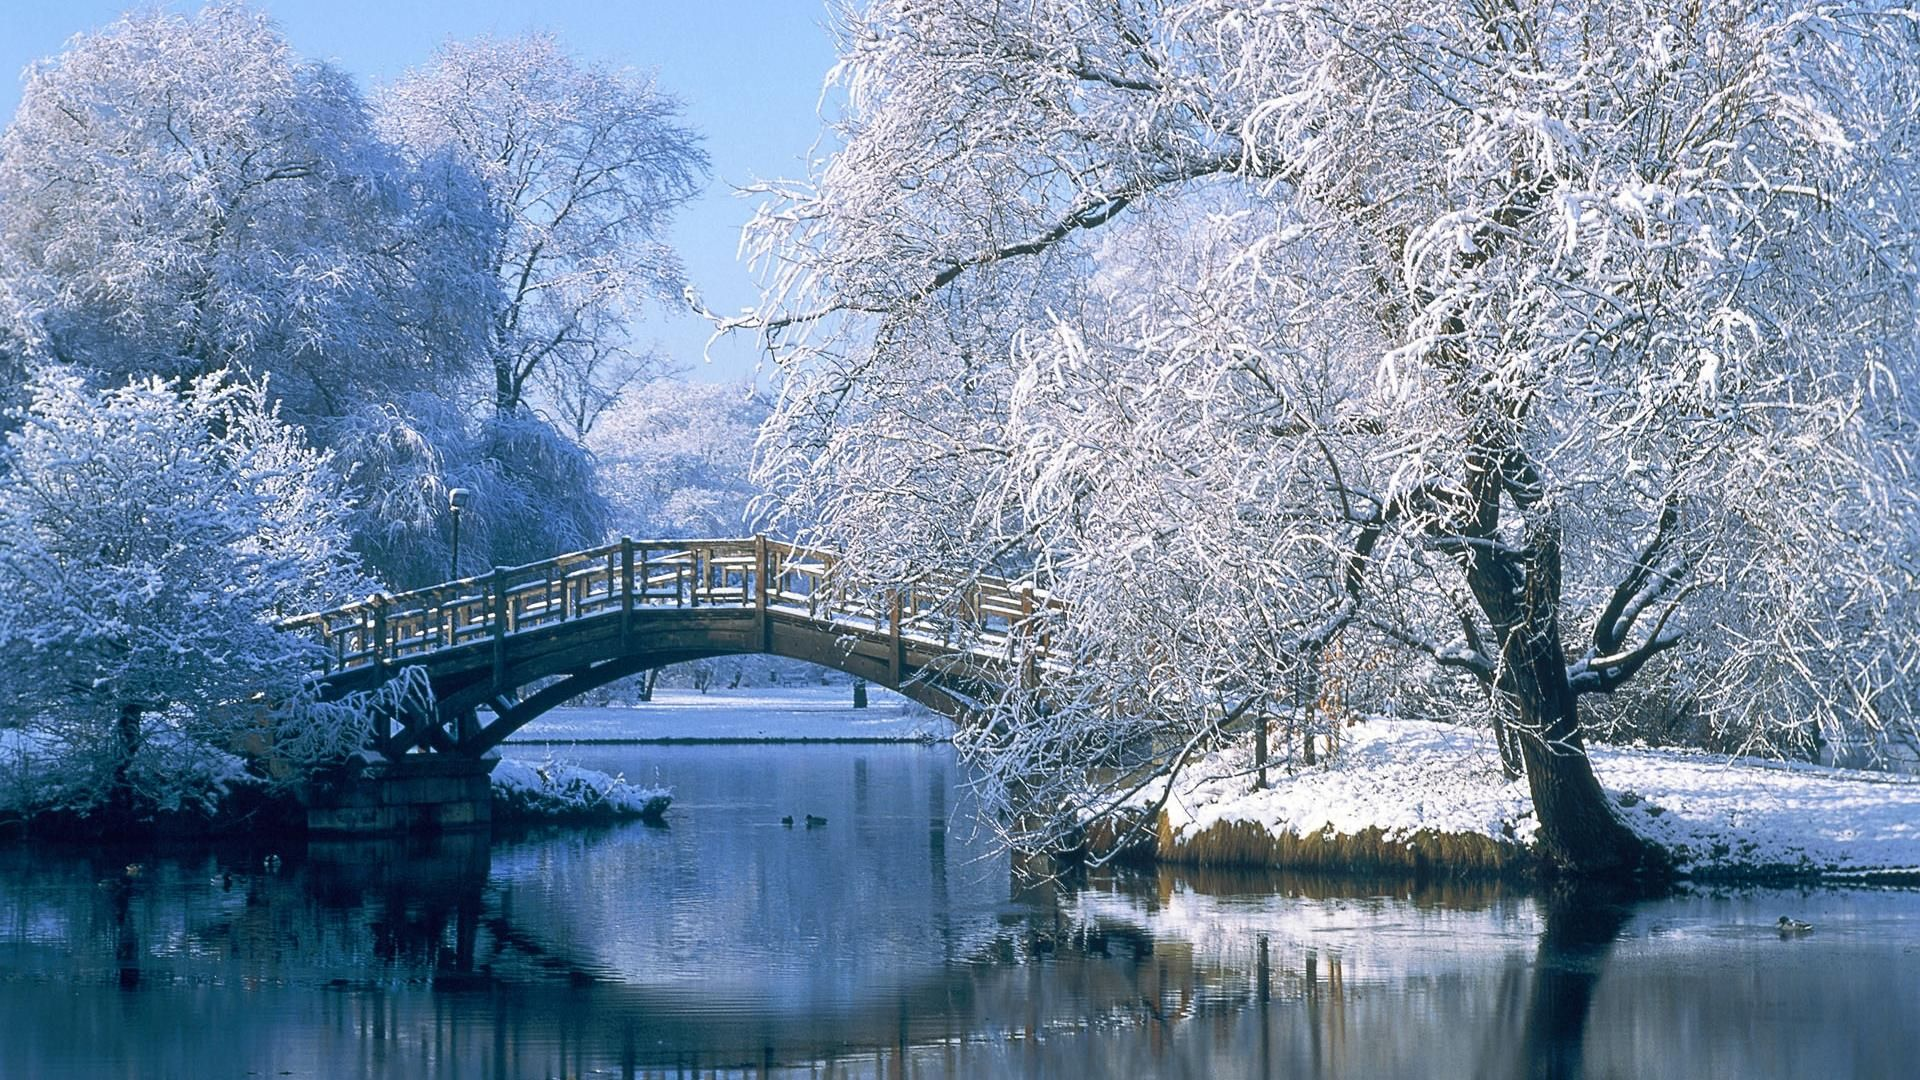 Hd image winter central park central parks for Central park wallpaper